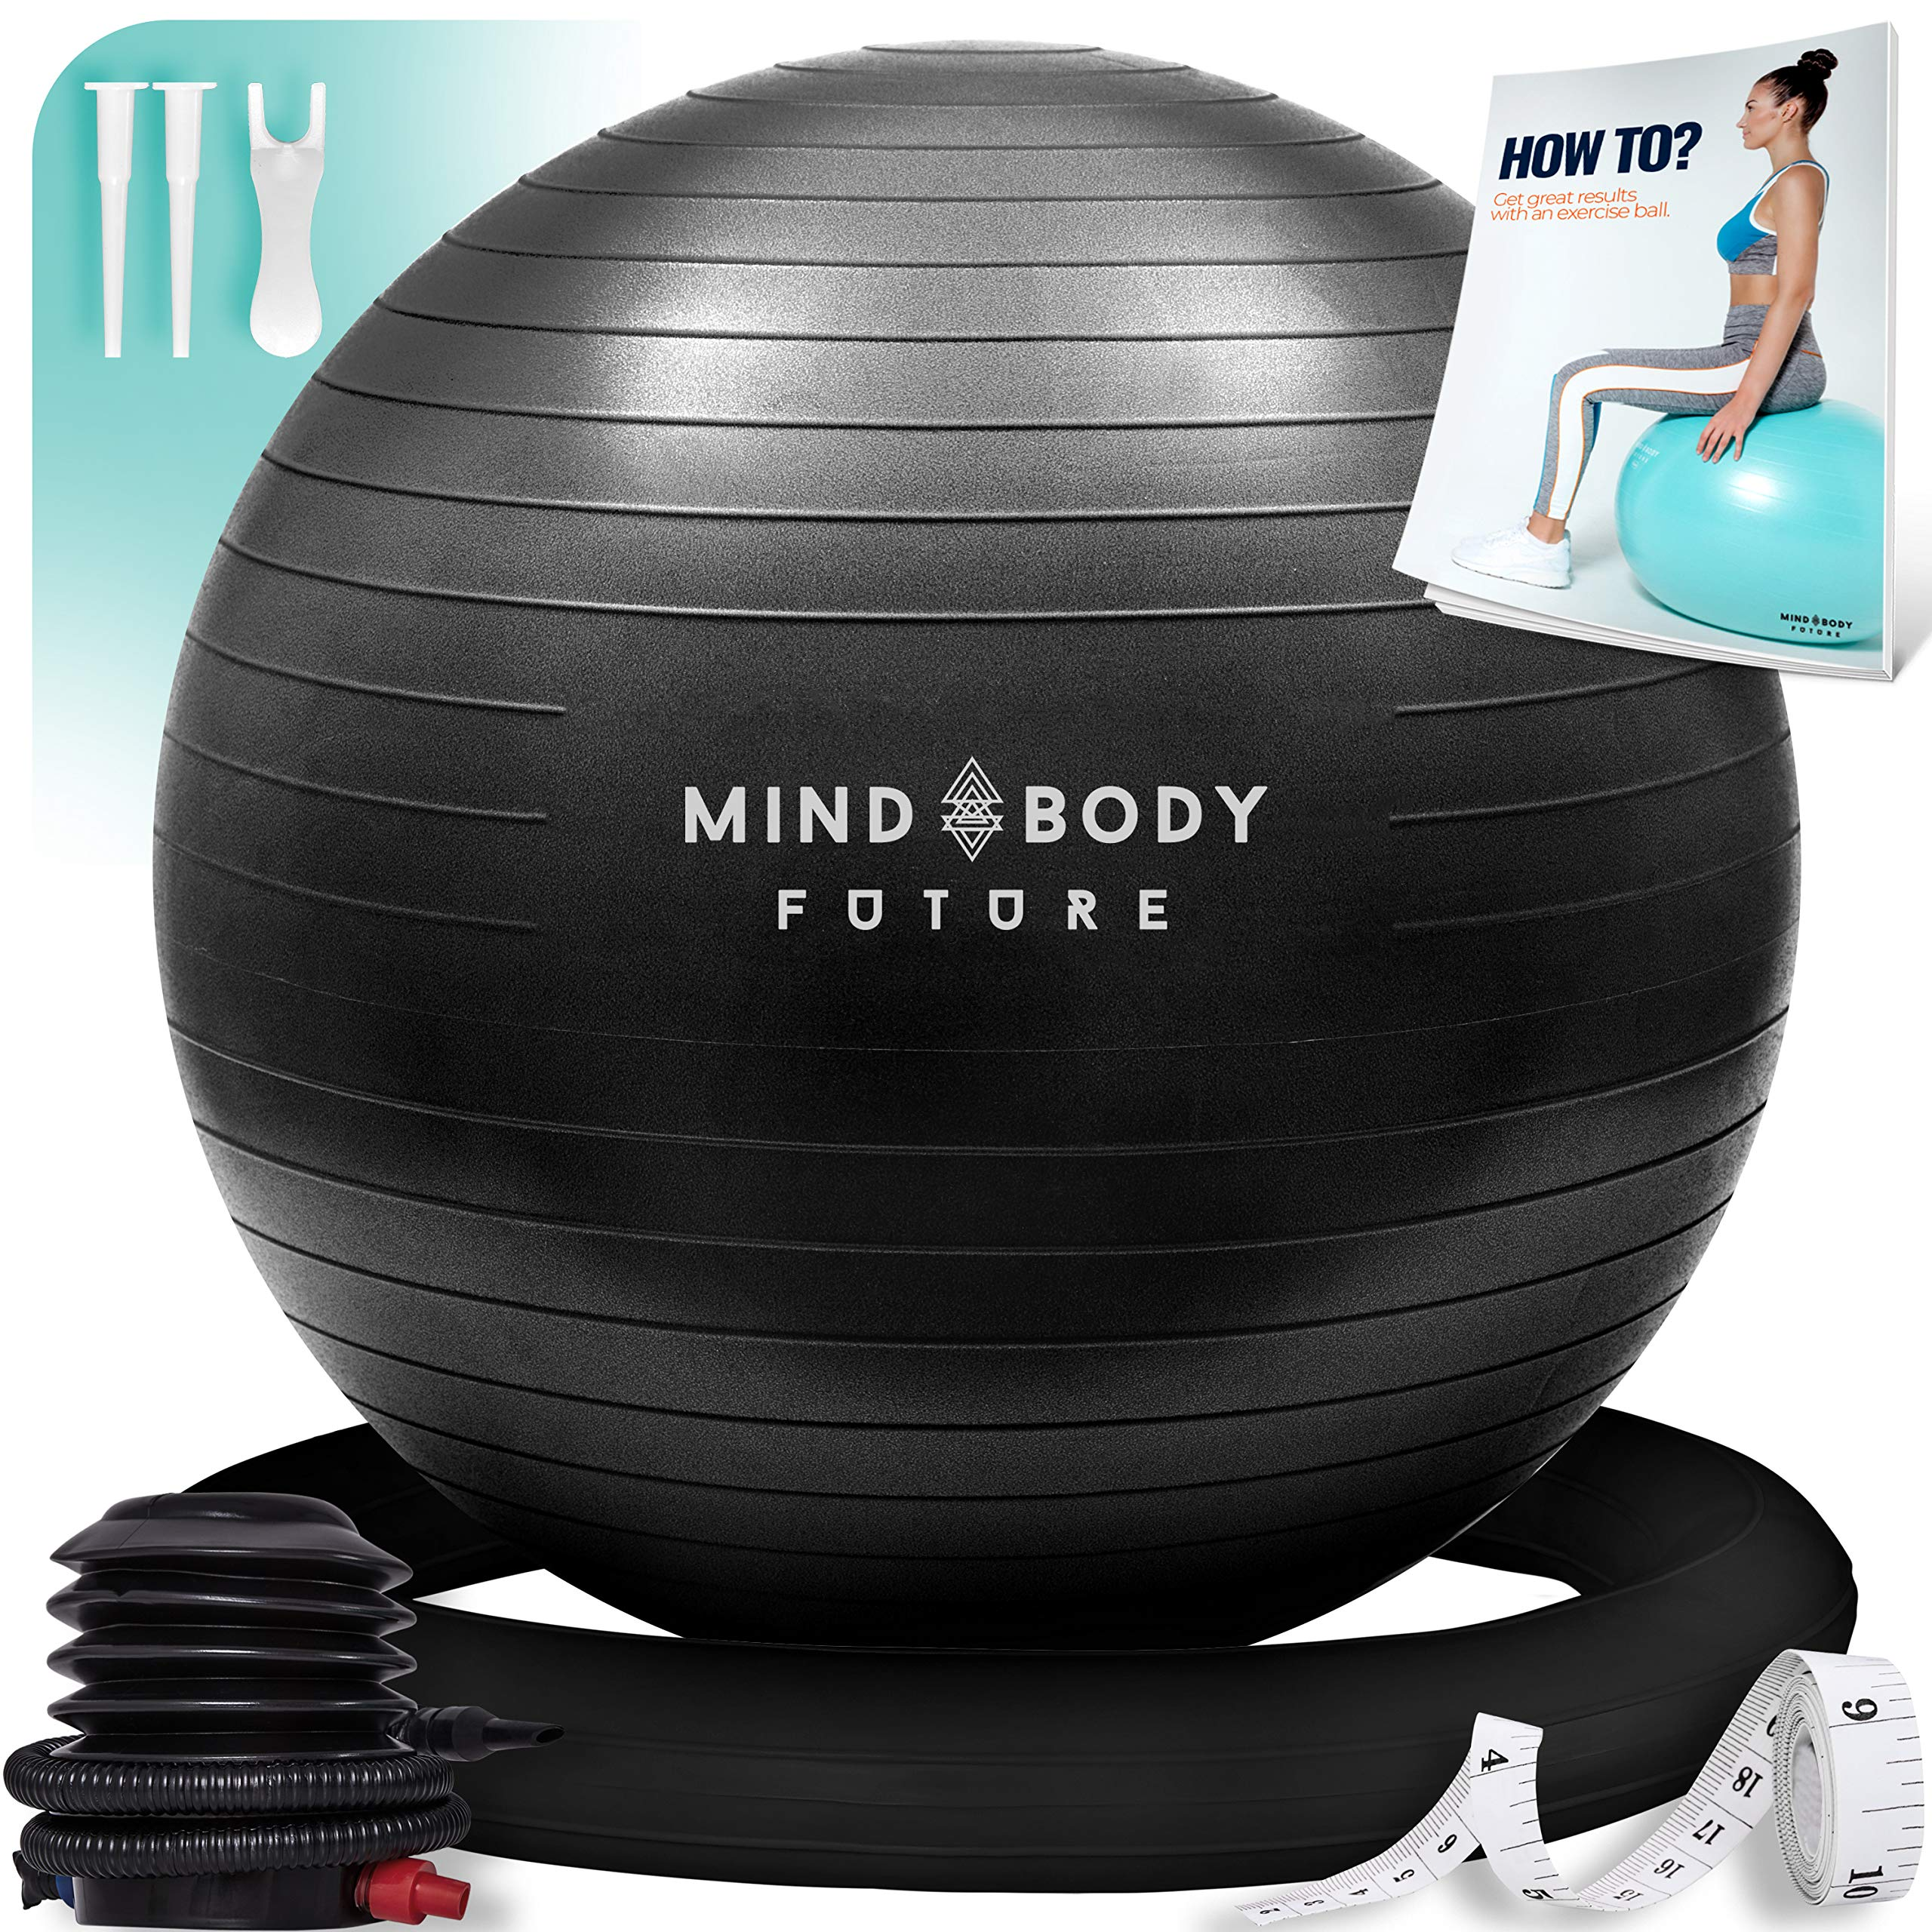 Mind Body Future Exercise Ball Chair & Stability Ring. 65cm Black. Anti-Slip & Anti-Burst for Safety. Ideal for Yoga, Pilates or Birthing Therapy - Includes Bonus eGuide & Pump